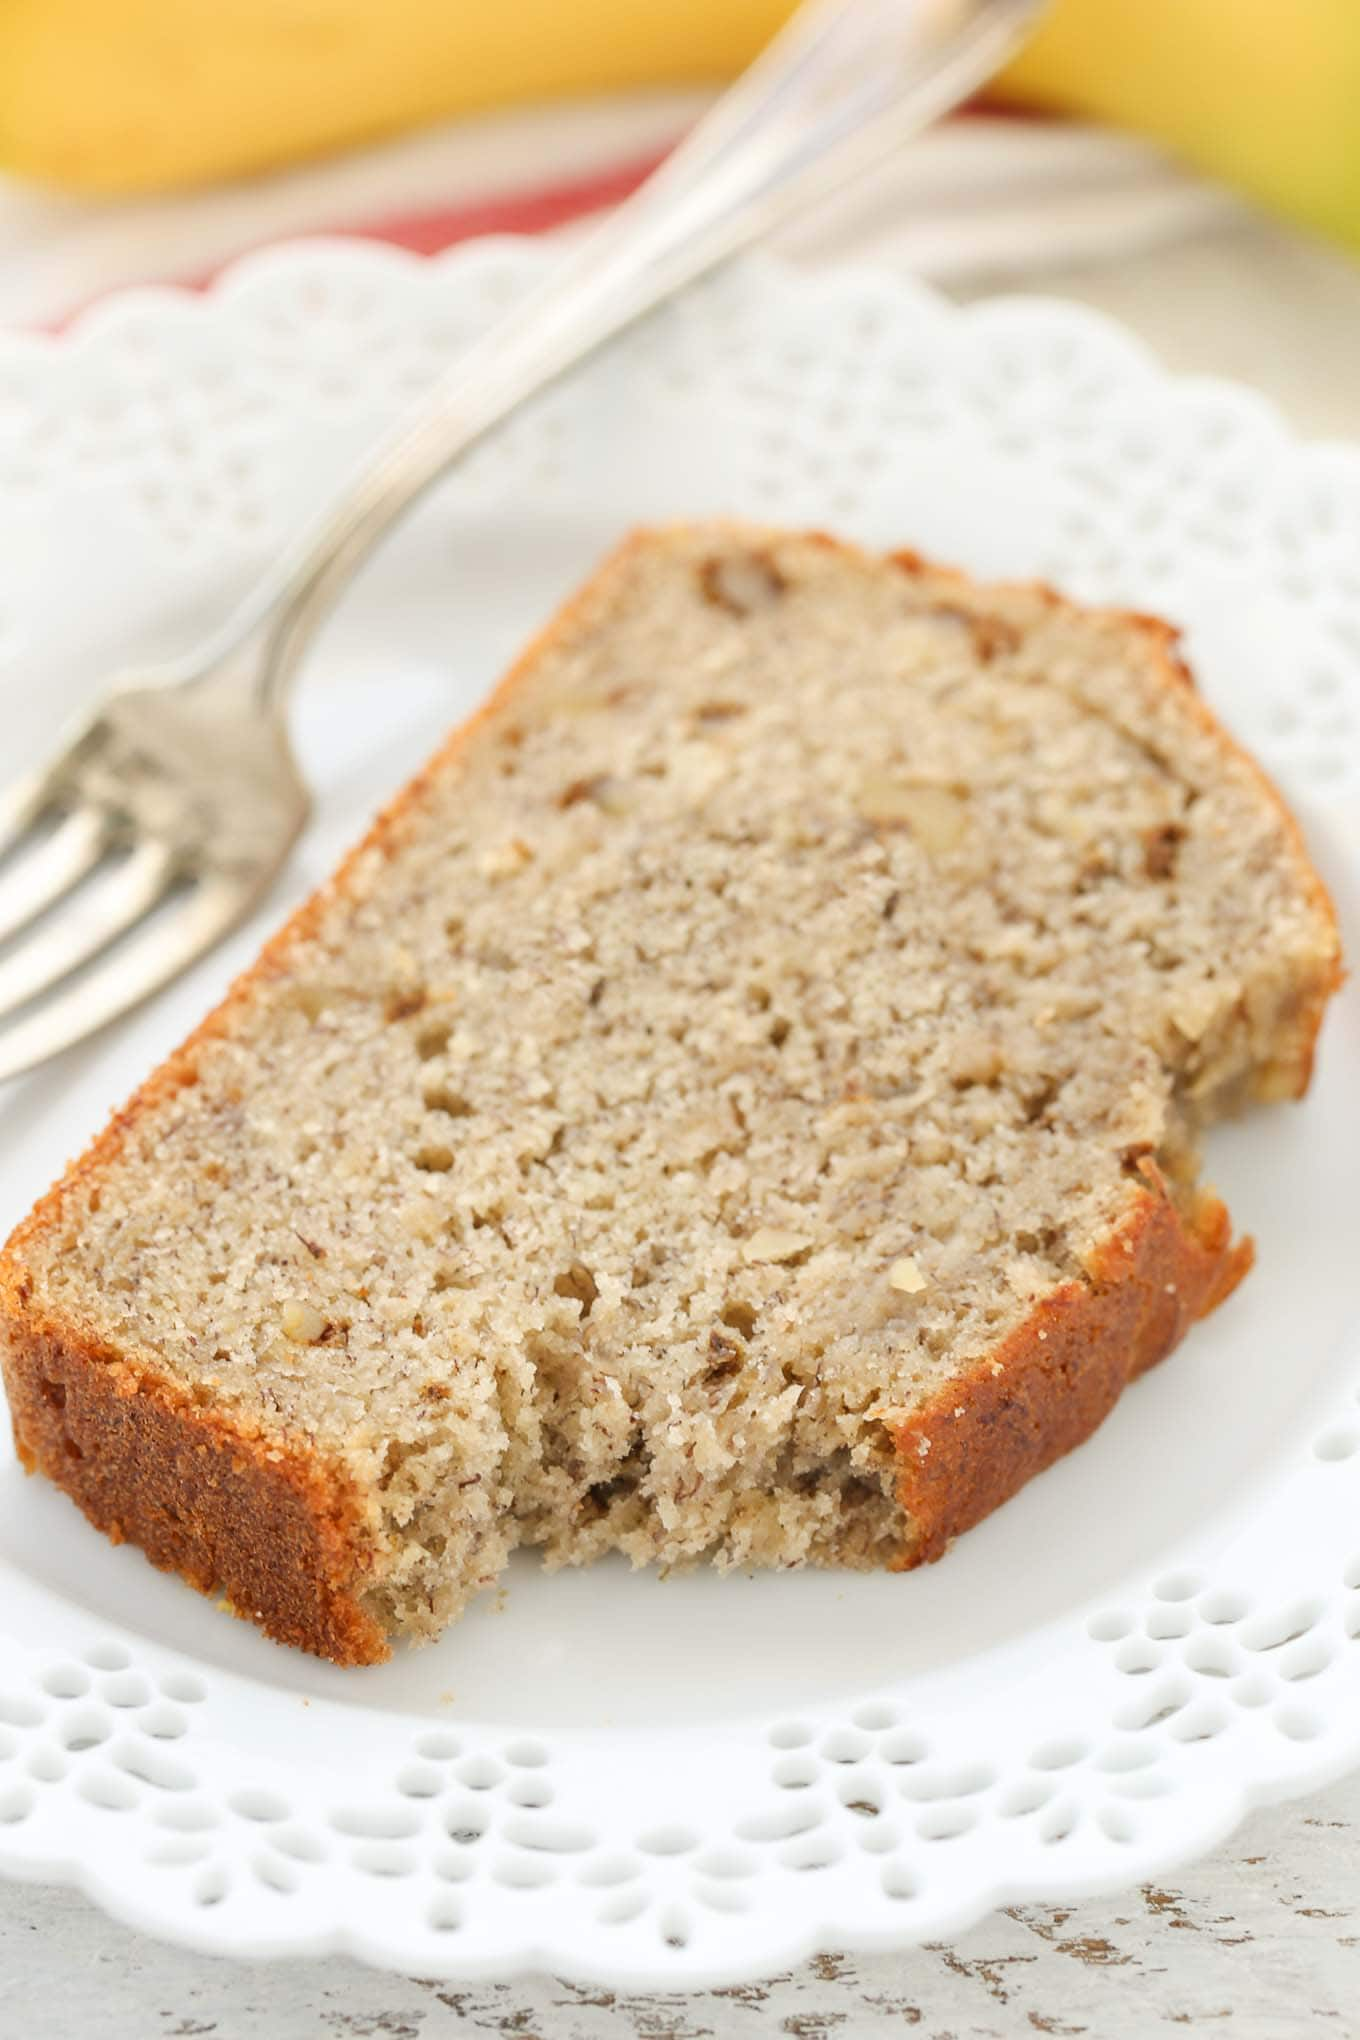 This Classic Banana Bread is perfectly sweet, moist, and full of flavor! You can enjoy this bread plain, with chopped walnuts, or even chocolate chips. Perfect for breakfast or dessert!